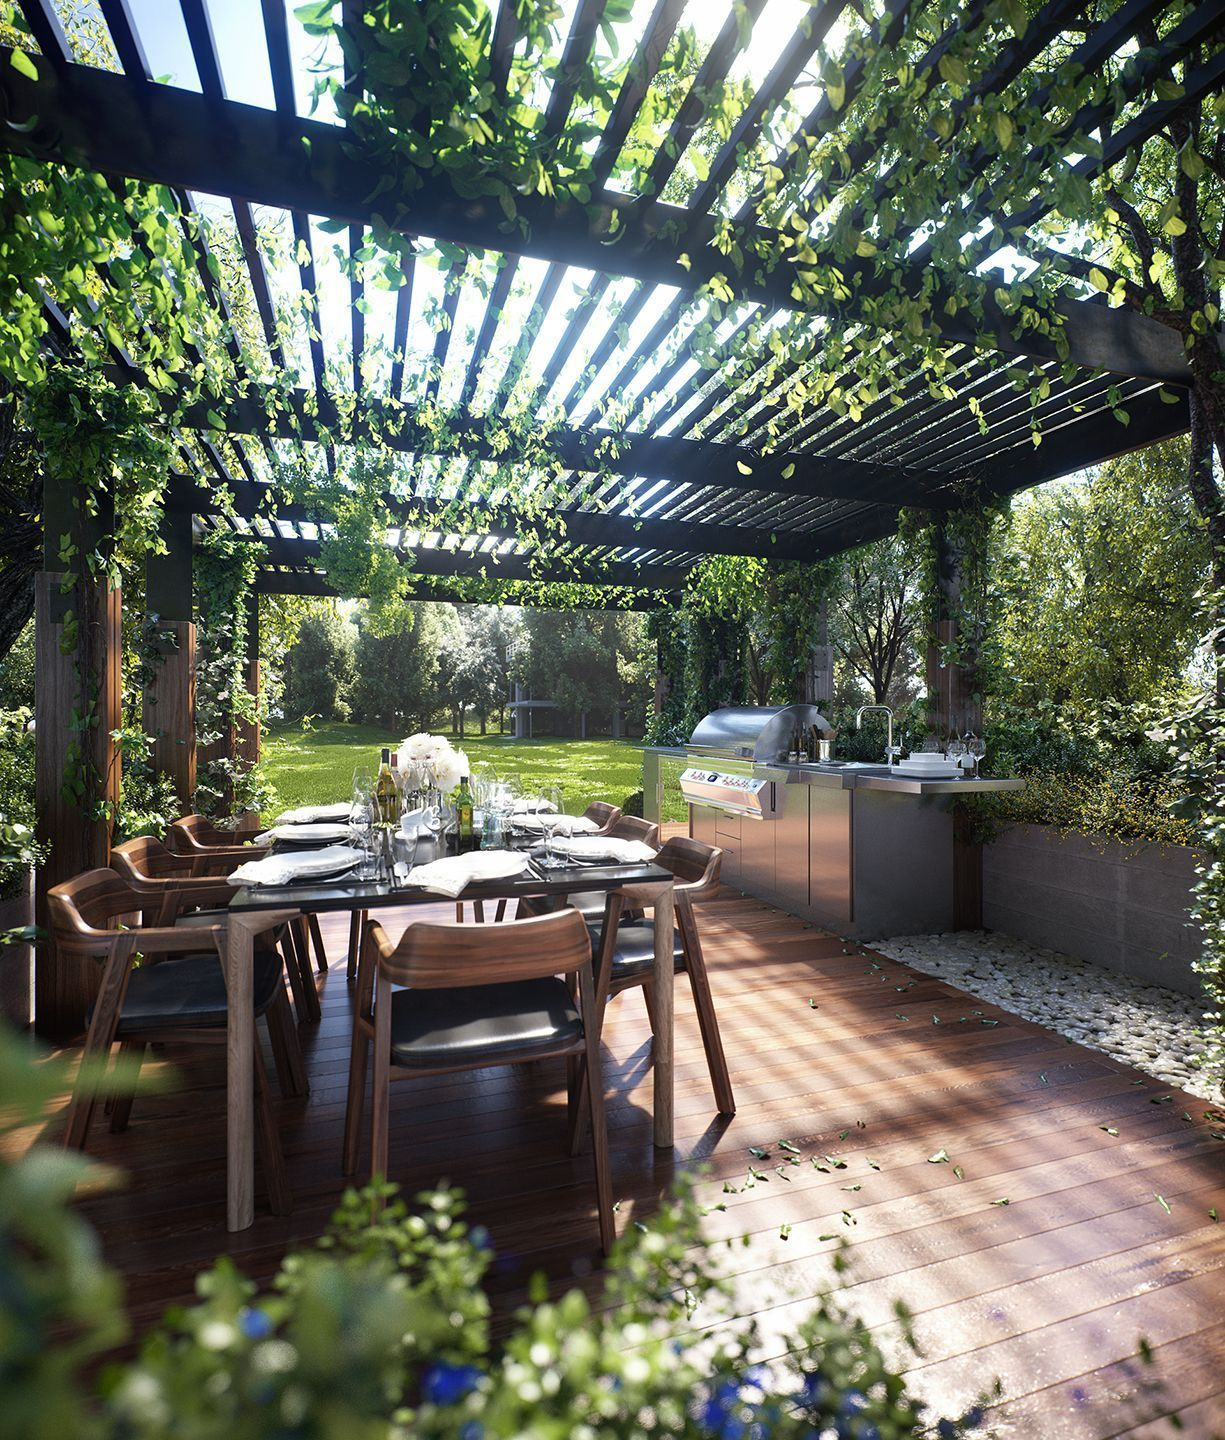 45 Awesome Outdoor Kitchen Ideas And Design Backyard Garden Design Outdoor Pergola Backyard Pergola